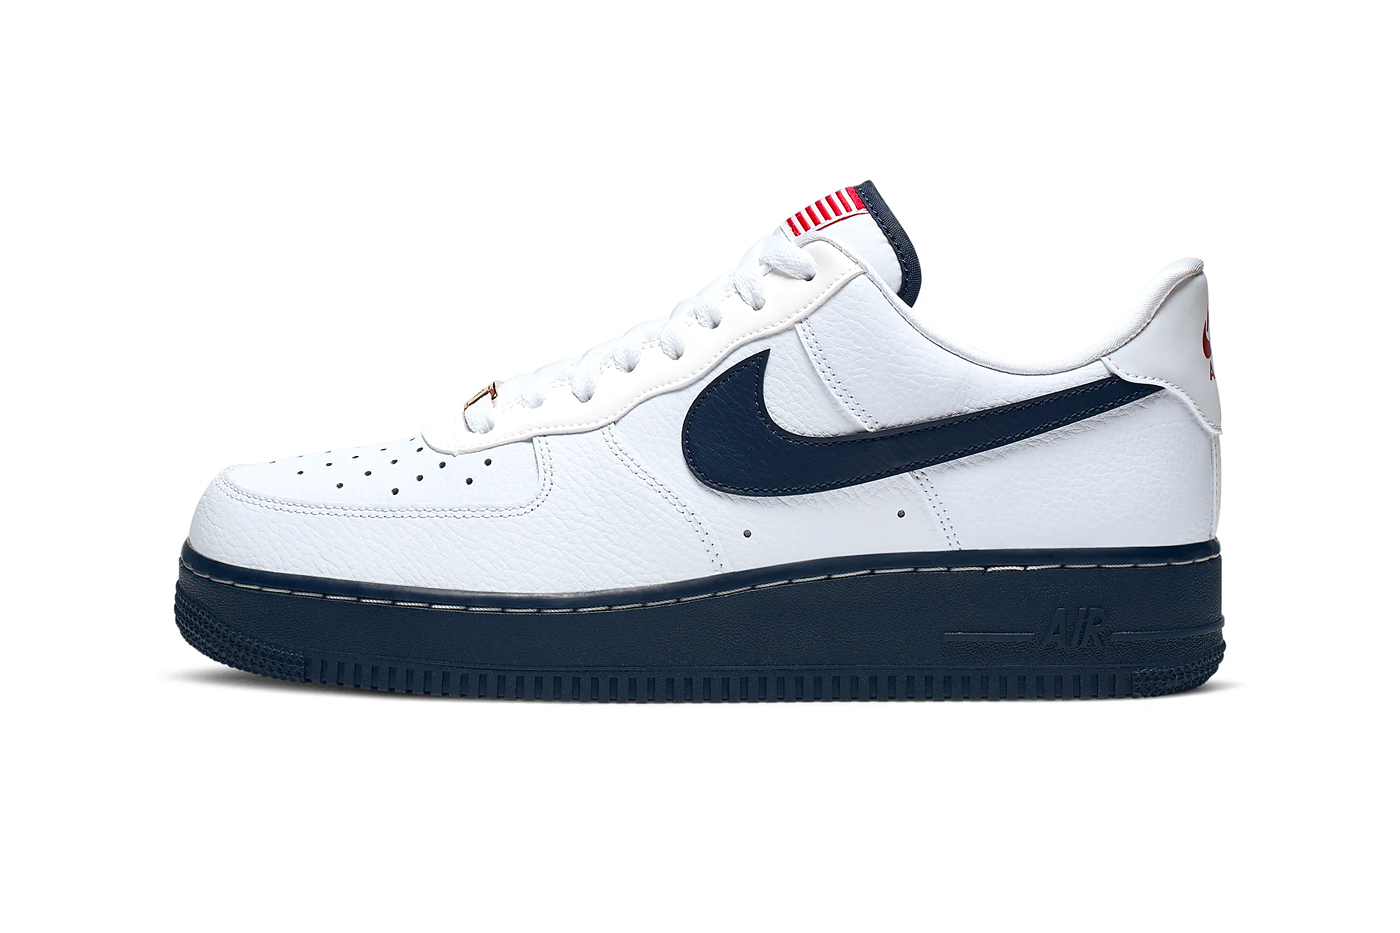 Nike Air Force 1 '07 LV8 USA Flag Release Info CK5718-100